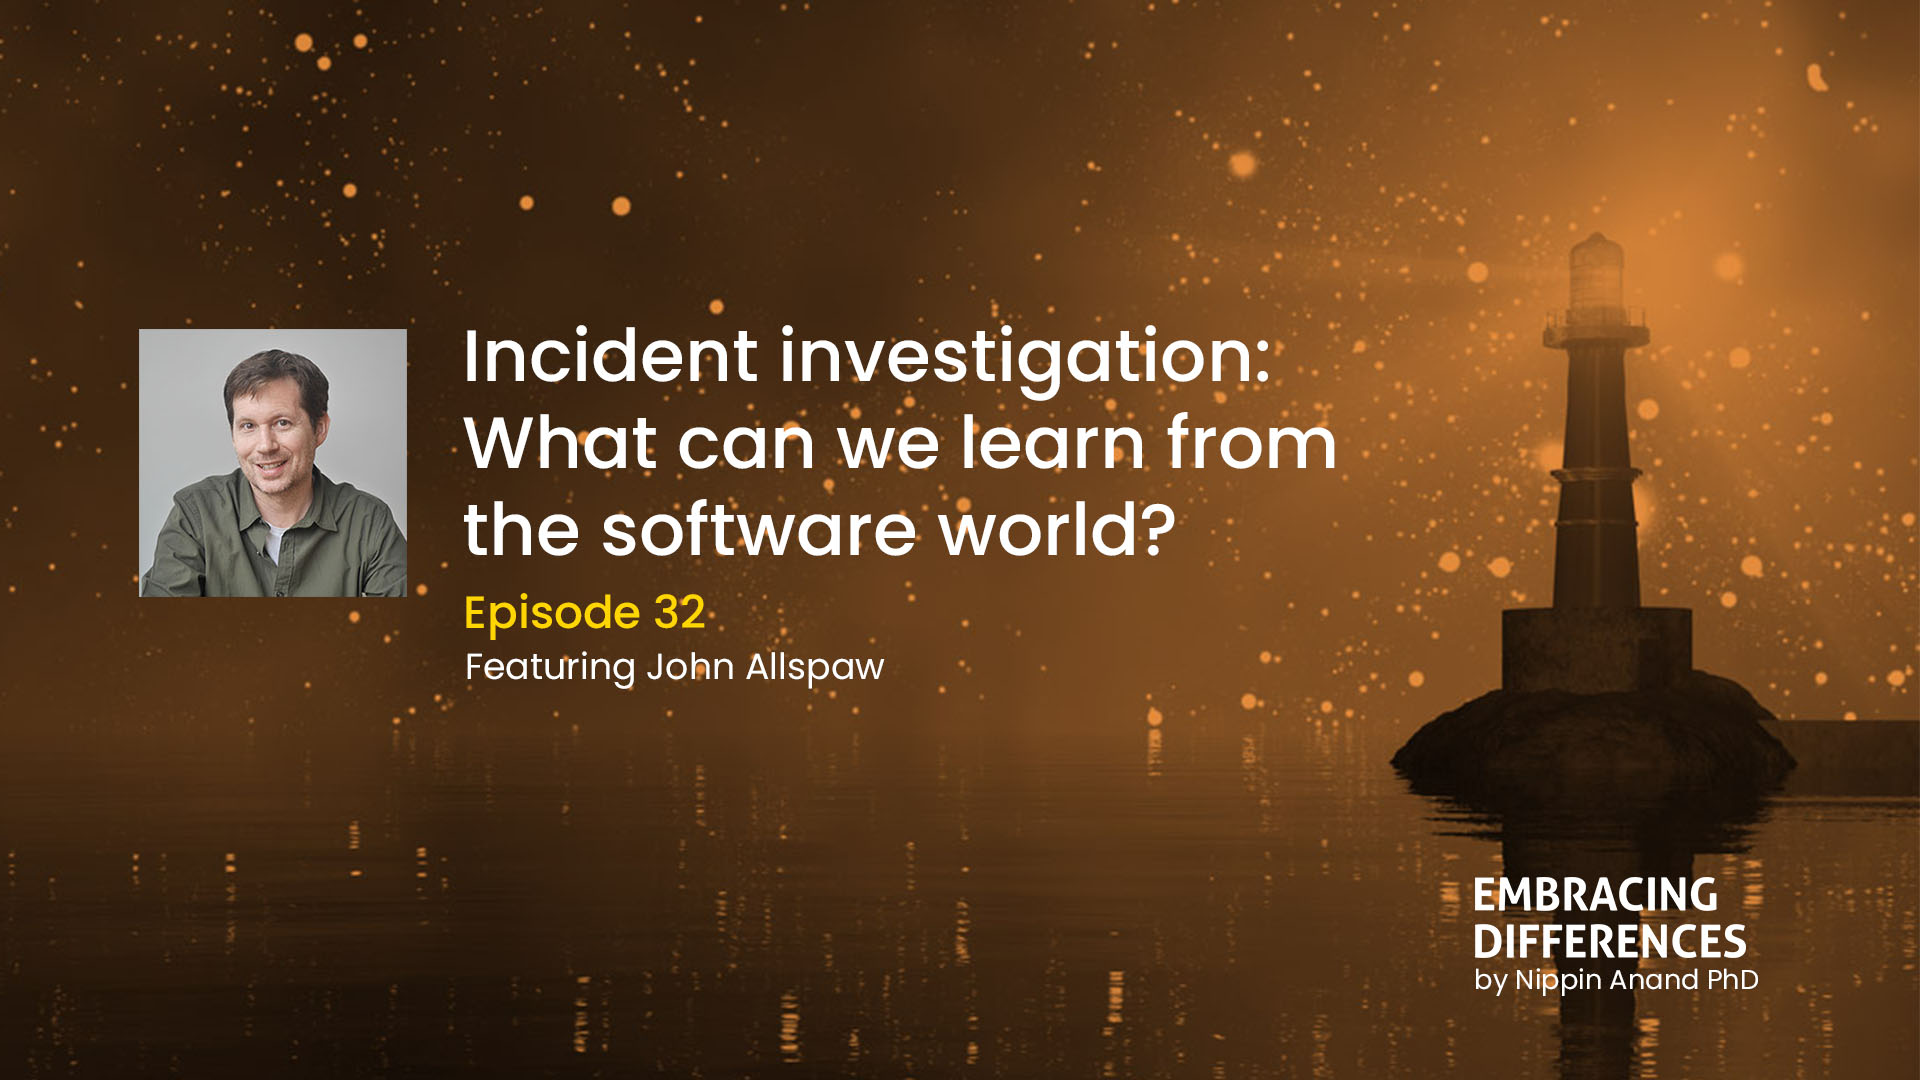 Incident investigation: What can we learn from the software world?